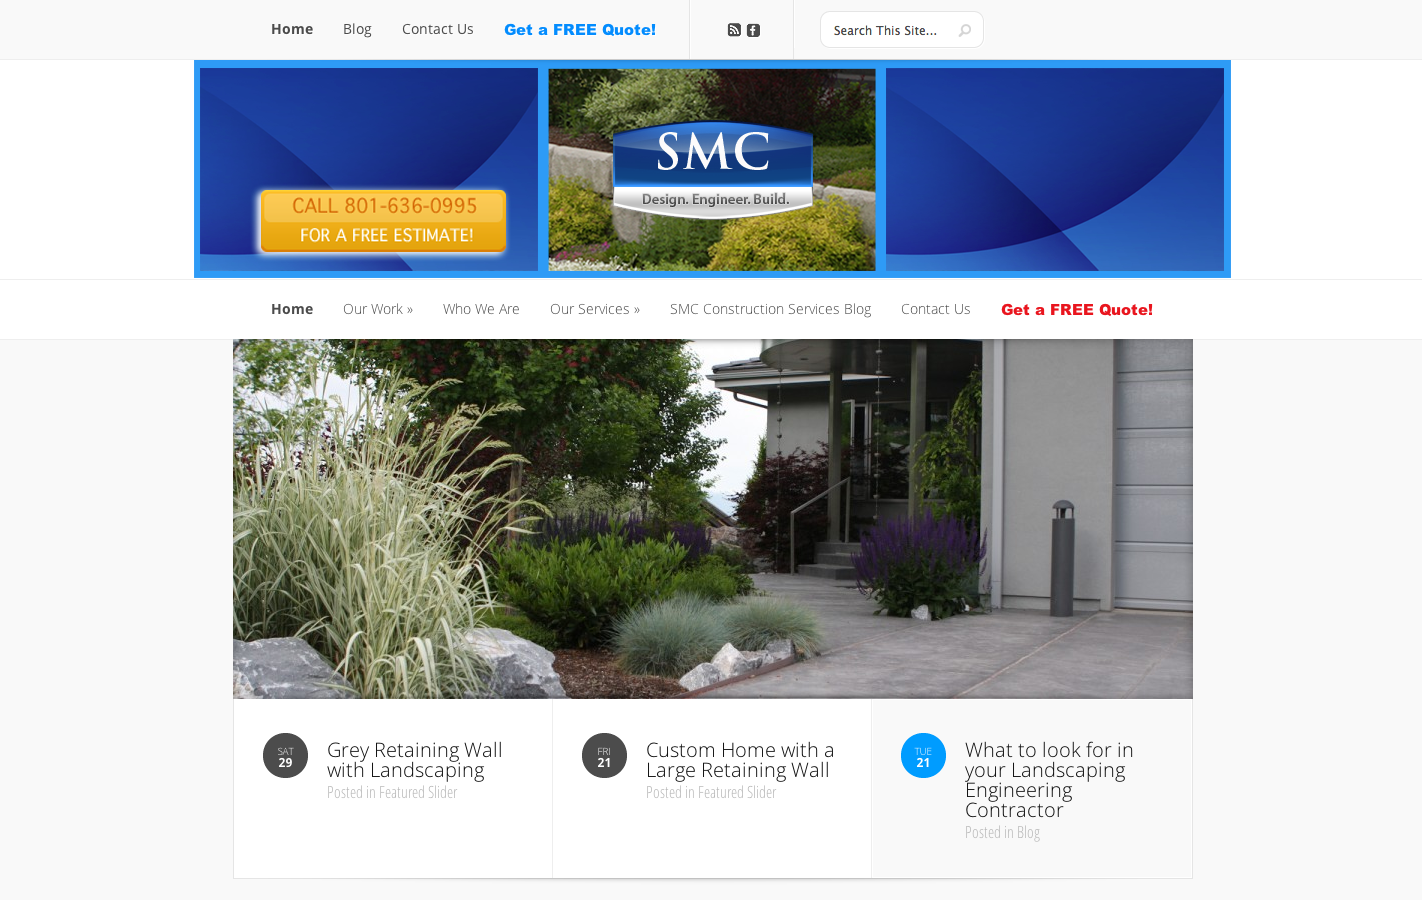 SMC Construction Services